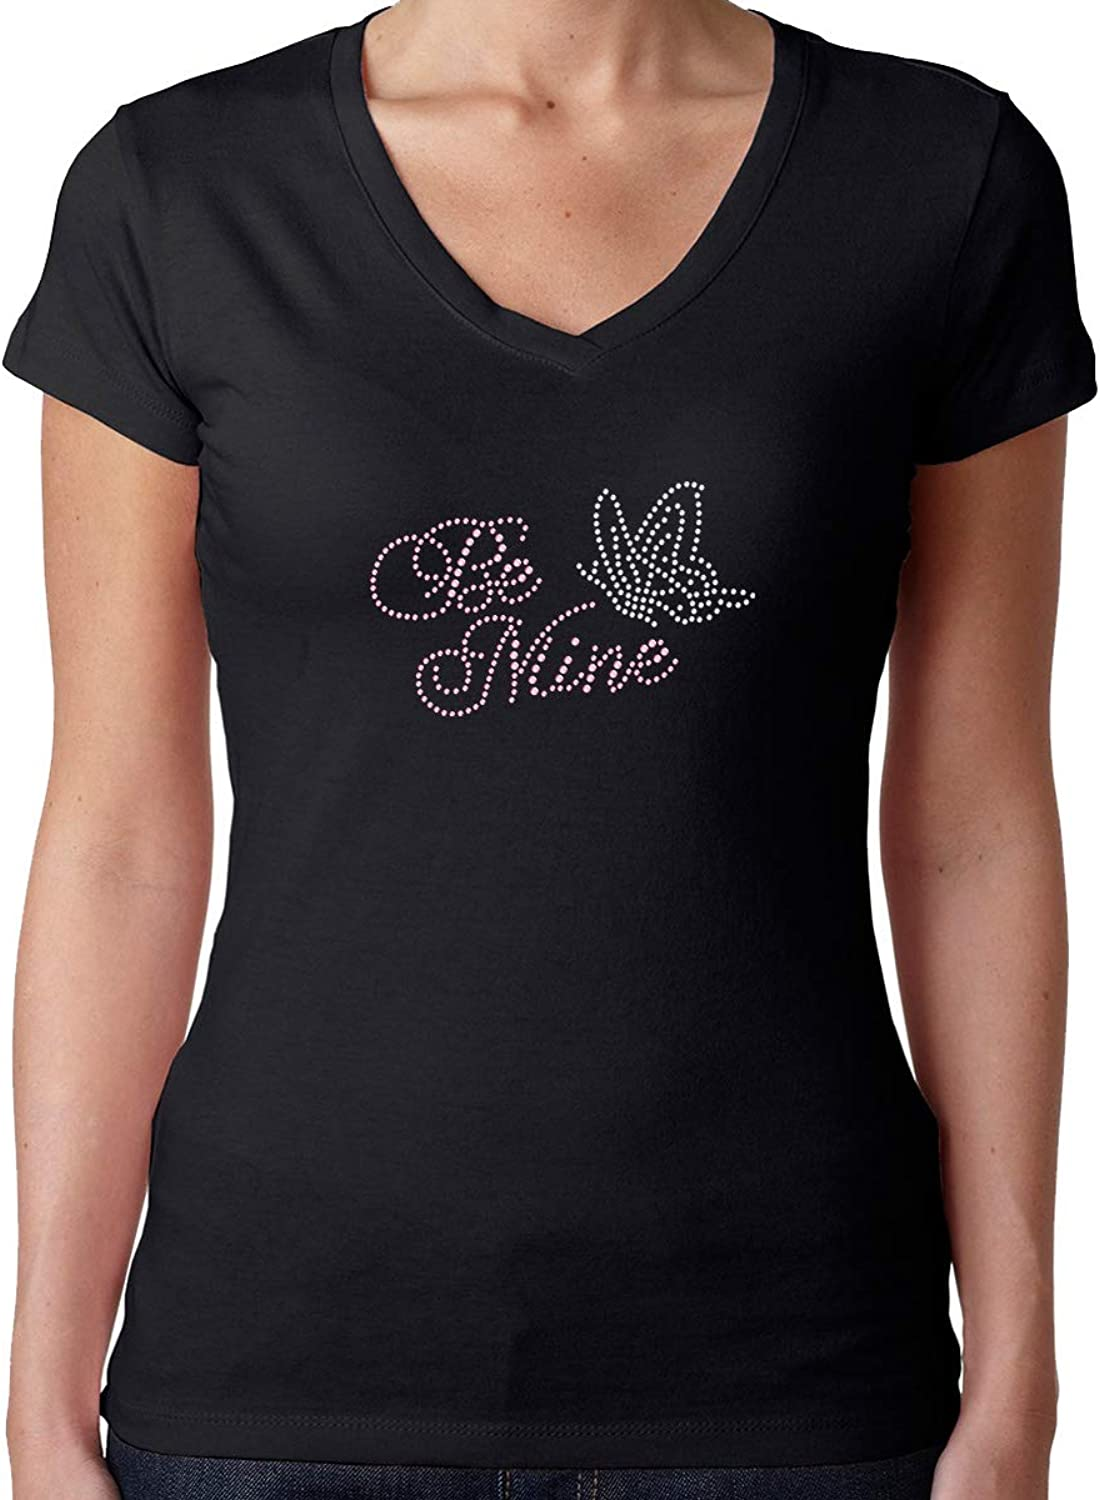 Womens TShirt Rhinestone Bling Black Fitted Tee Be Mine Pink Butterfly